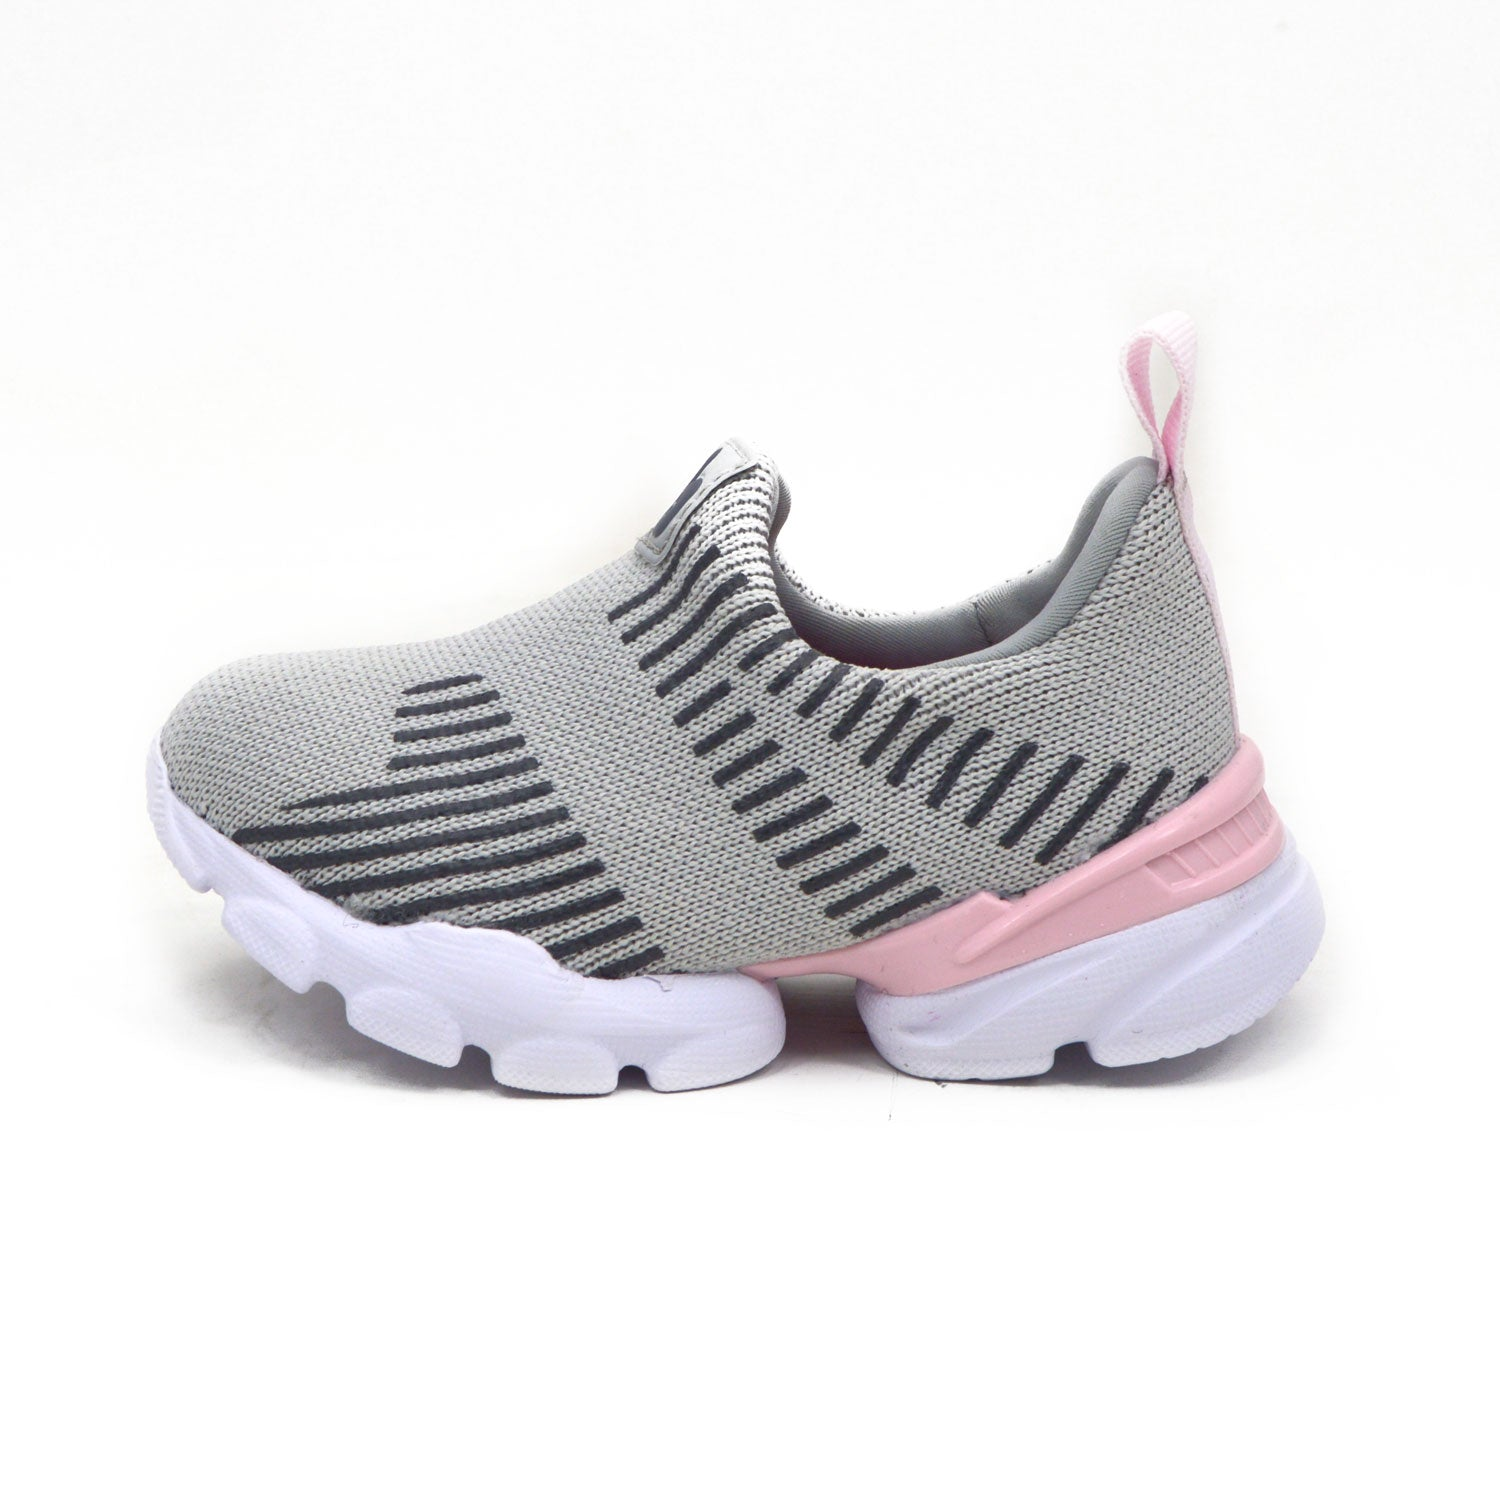 974e1776633c Baby & Toddler Shoes • Baby Bootique Clothing Online in Australia